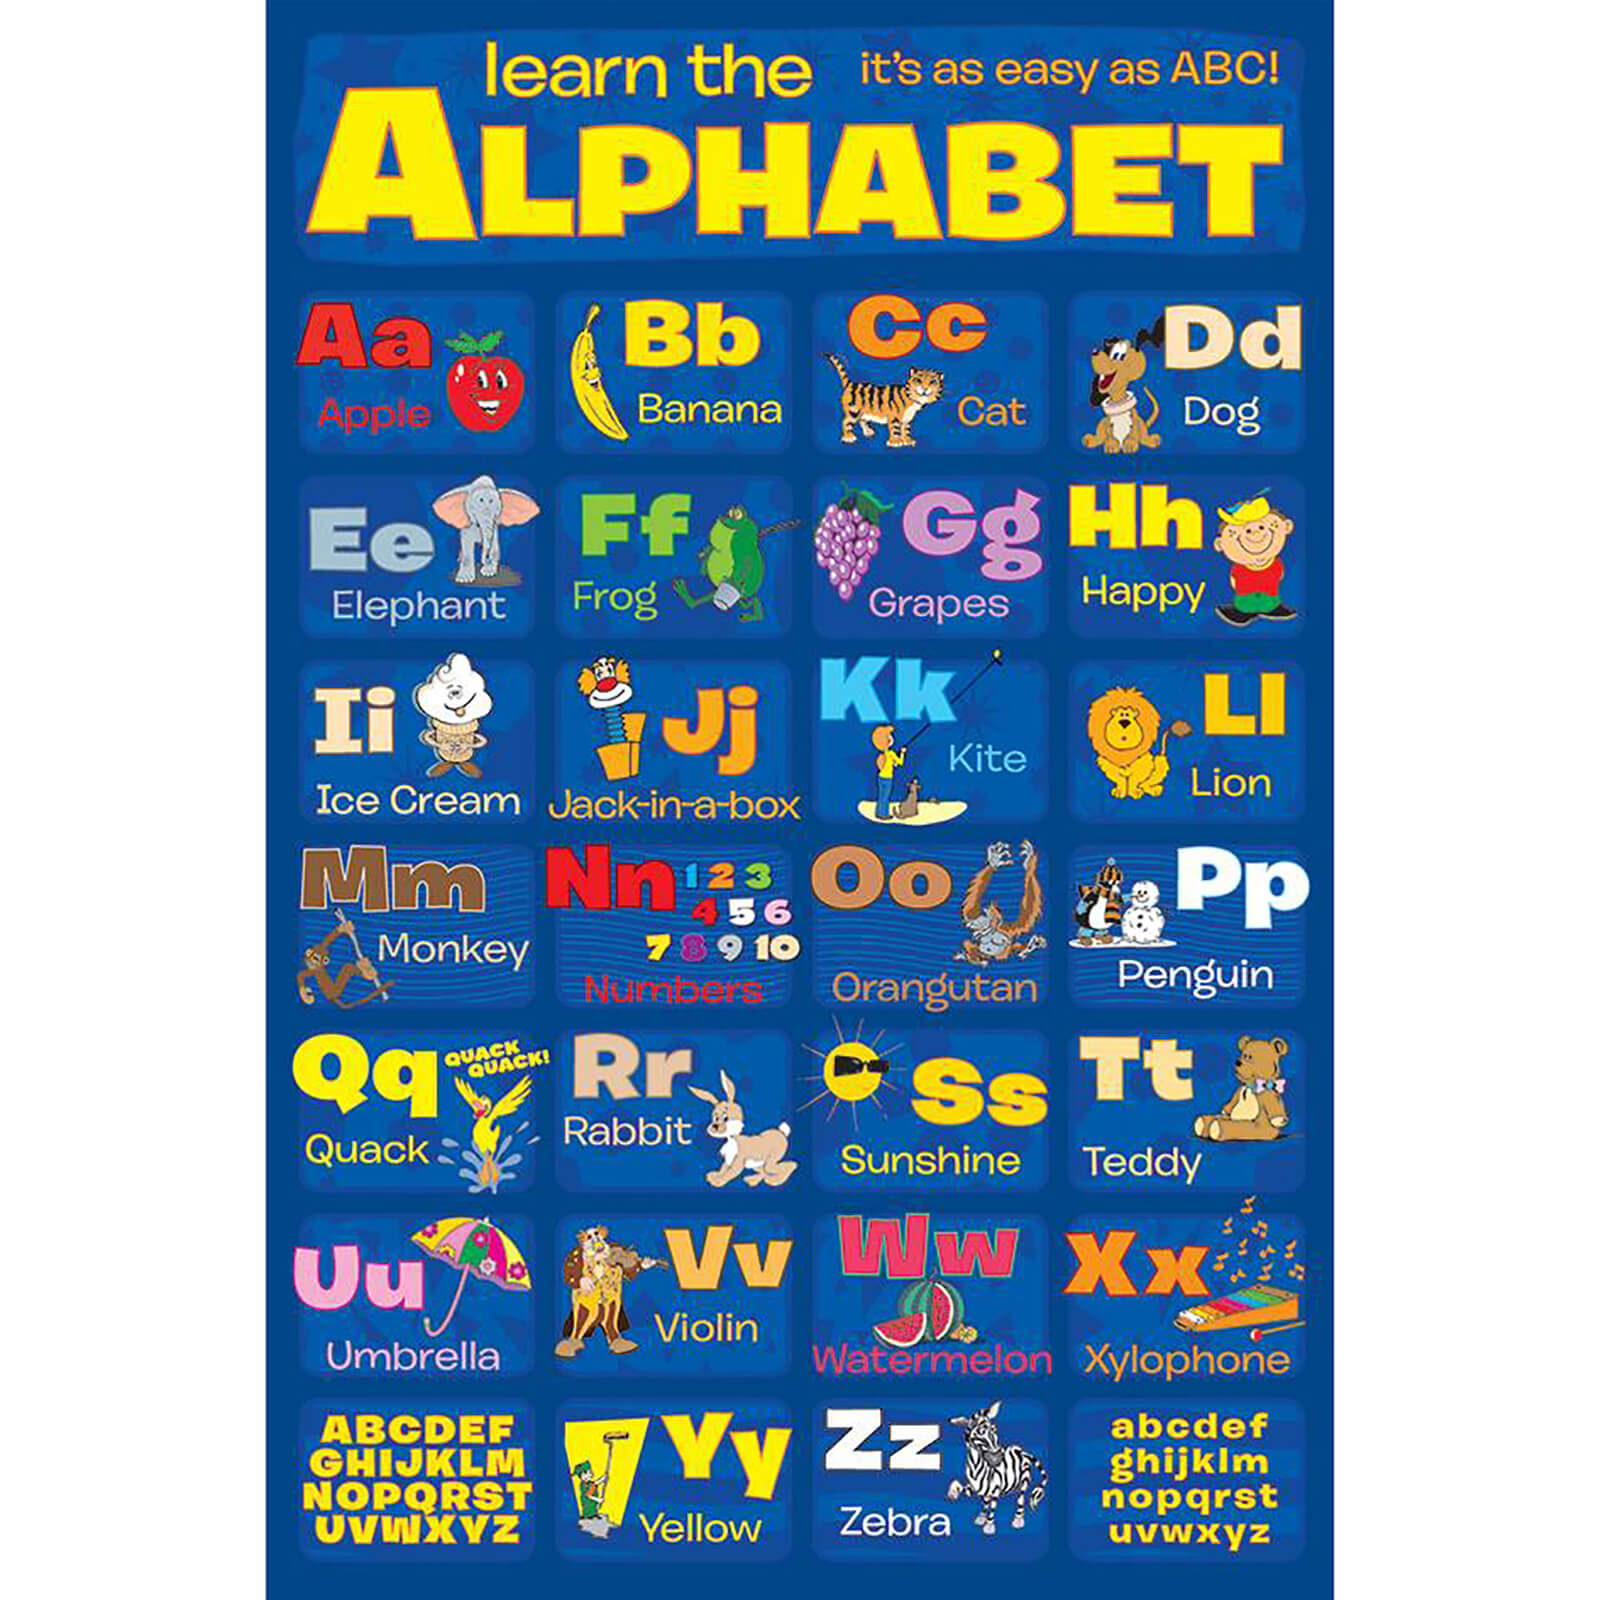 Know Your Alphabet - 61 x 91.5cm Maxi Poster